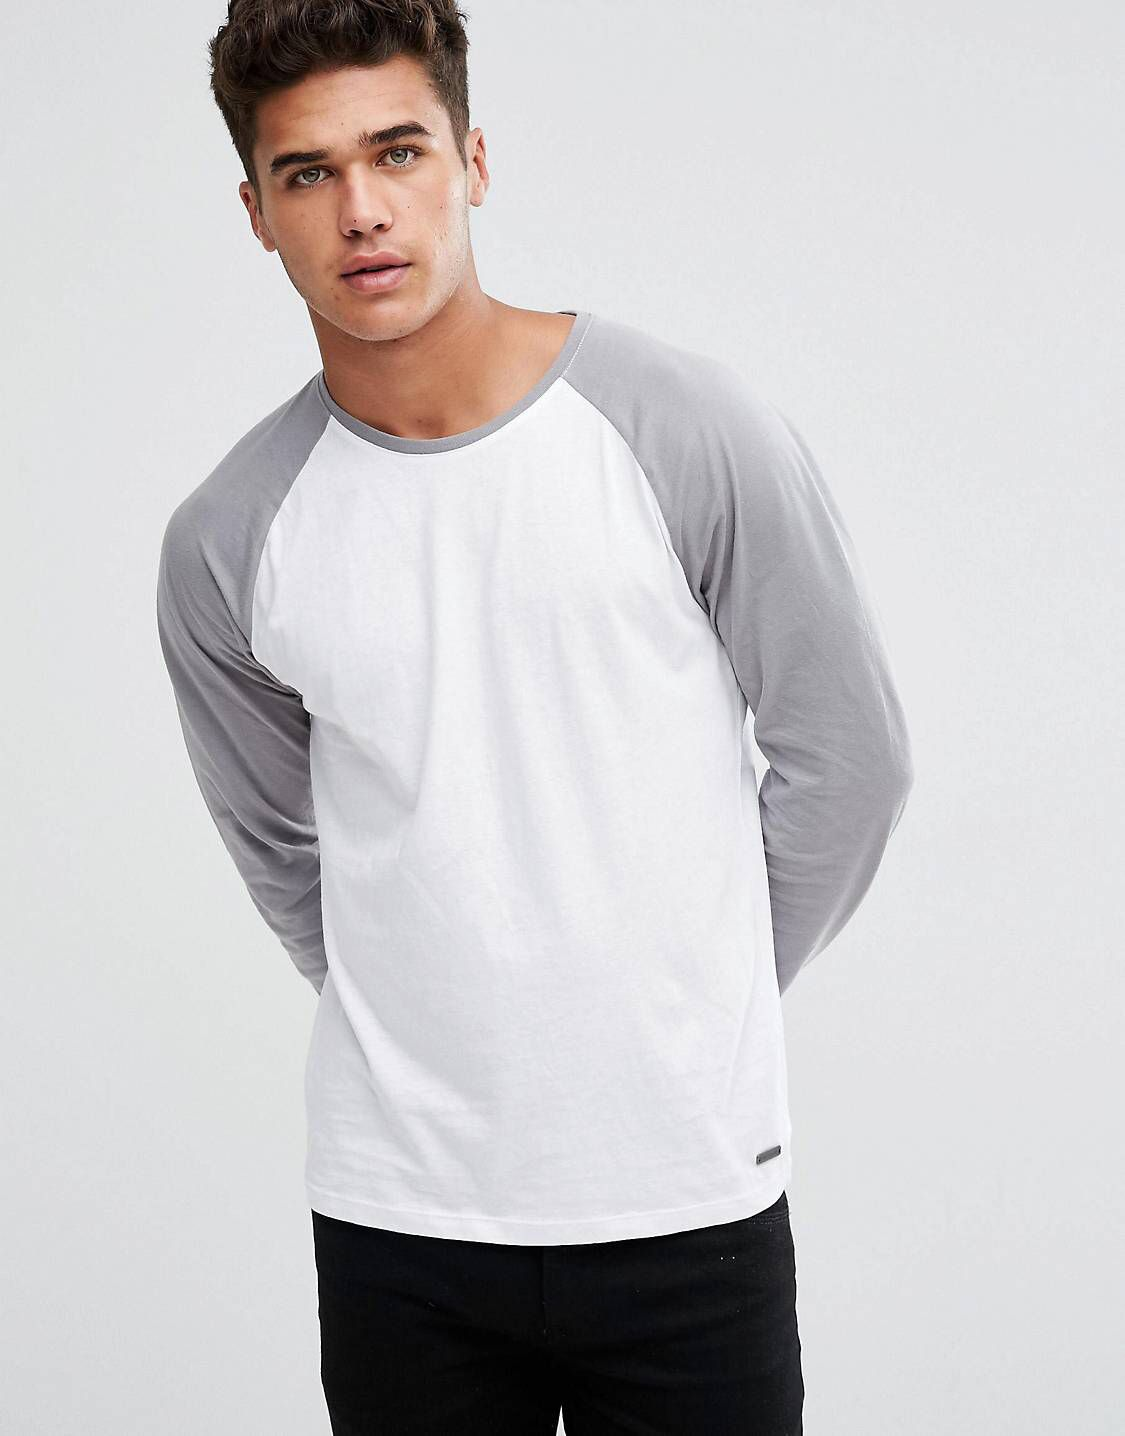 ba270109a5b3  24 LOVE this from ASOS!